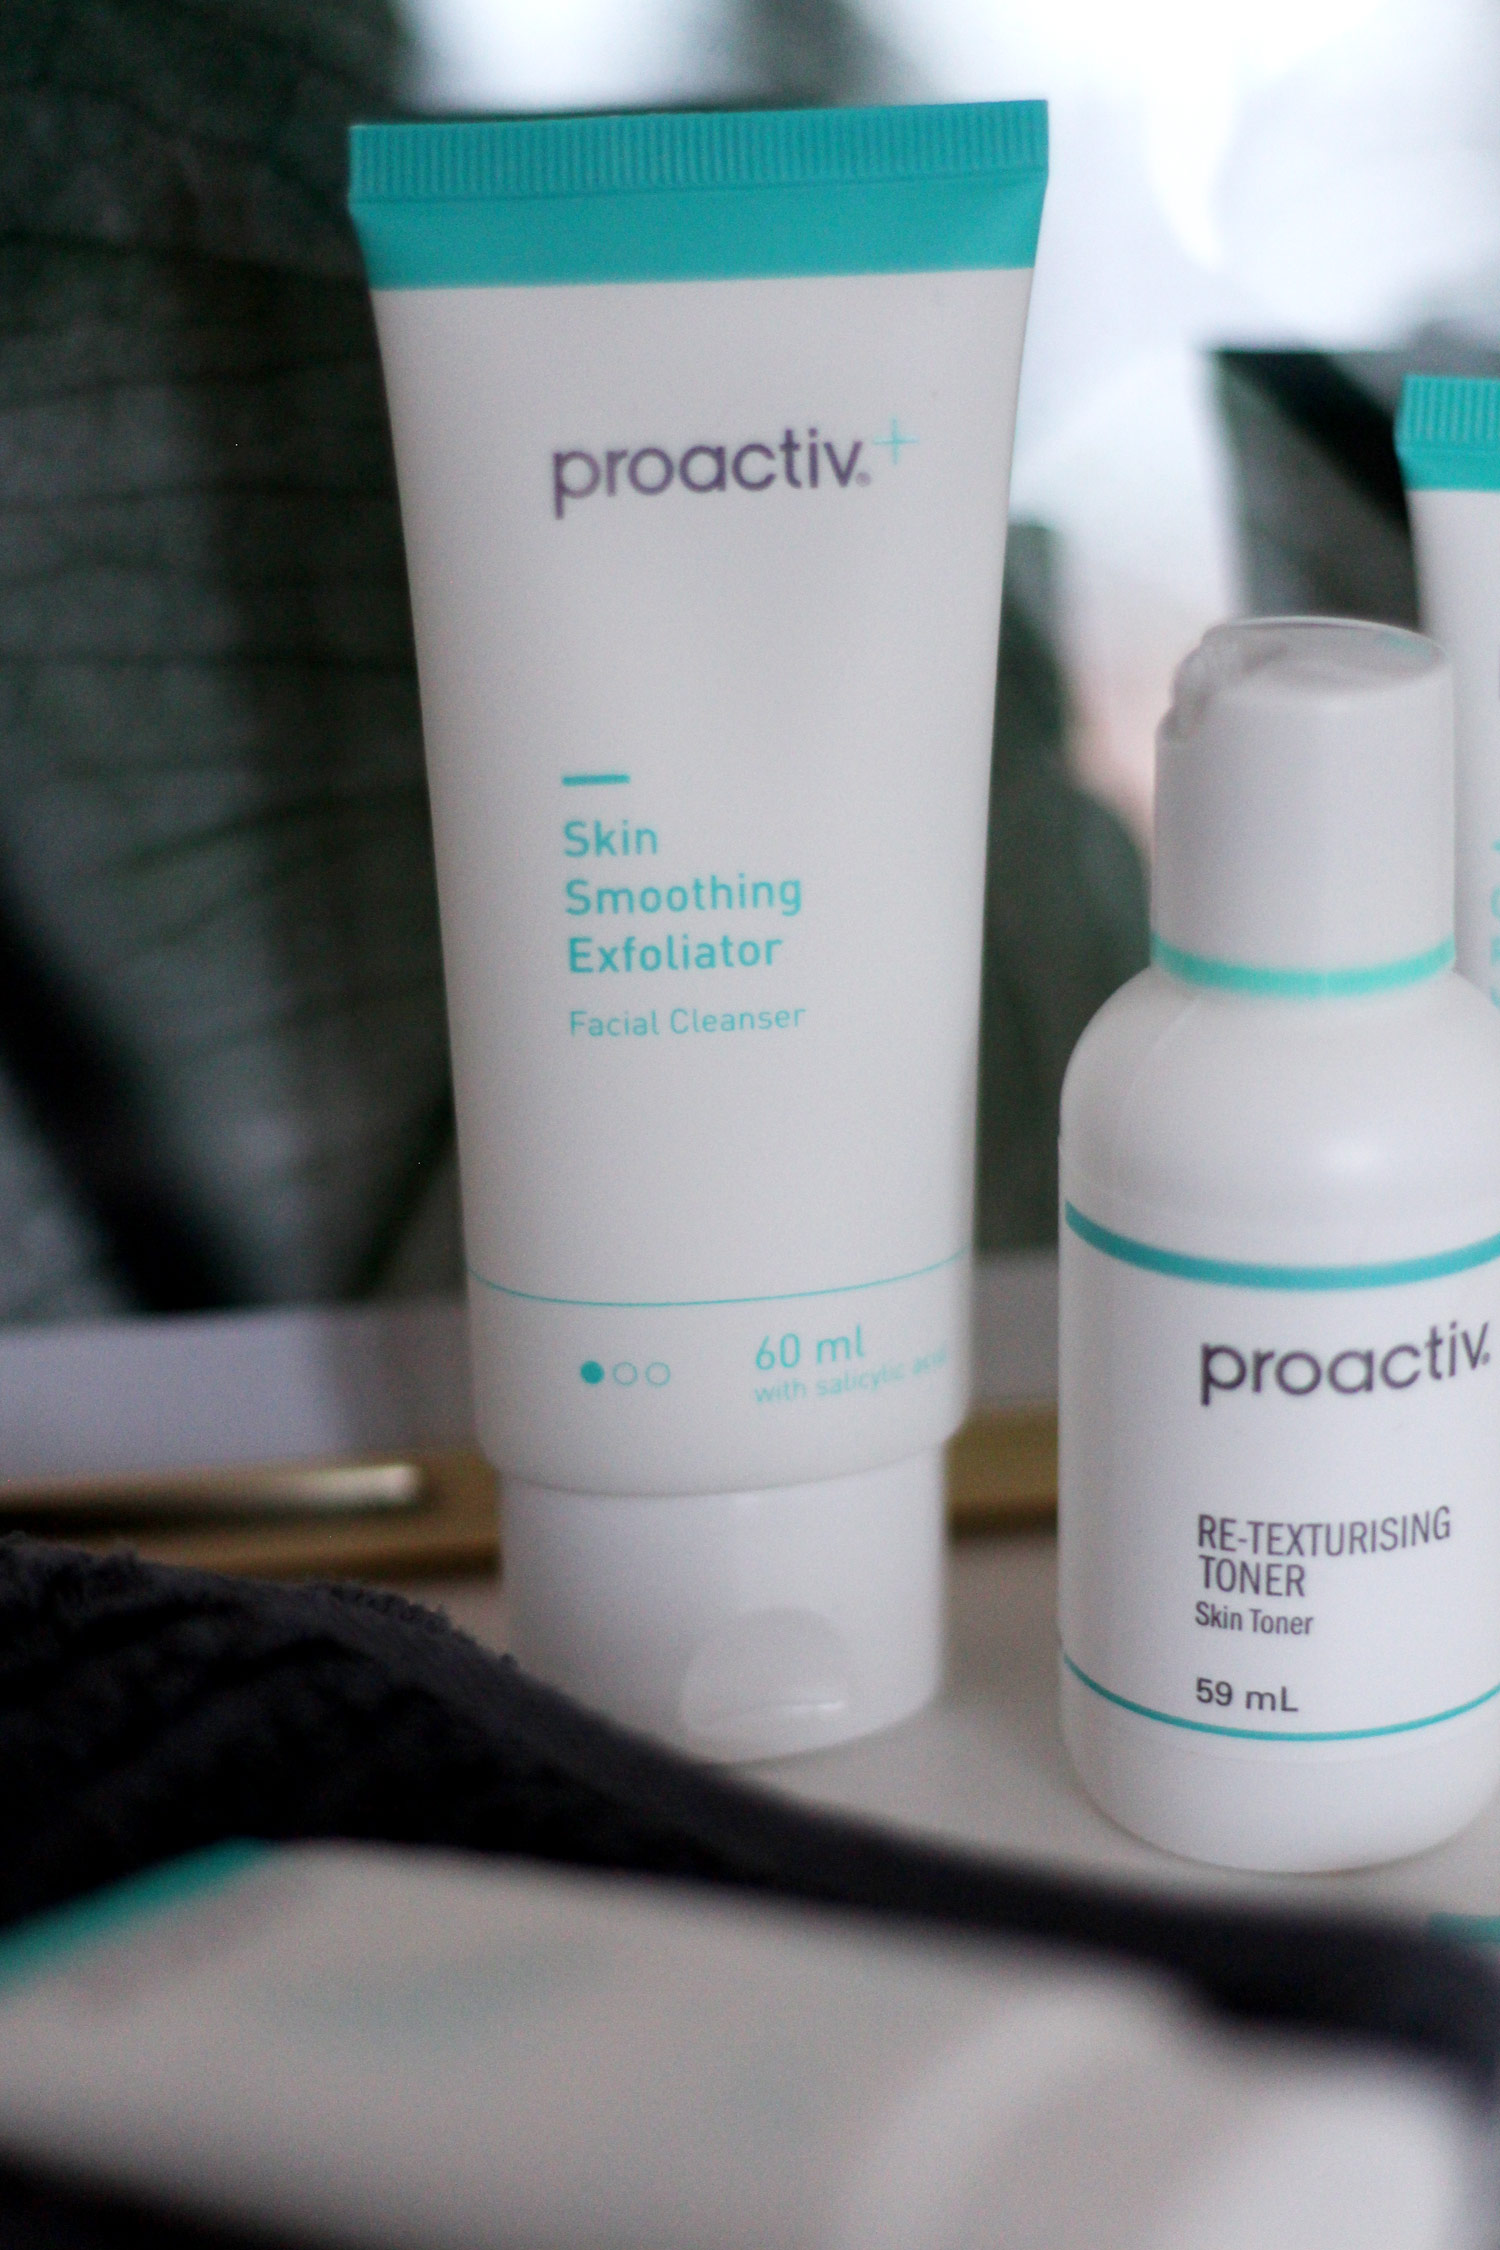 proactiv-skincare-review-favourites-4